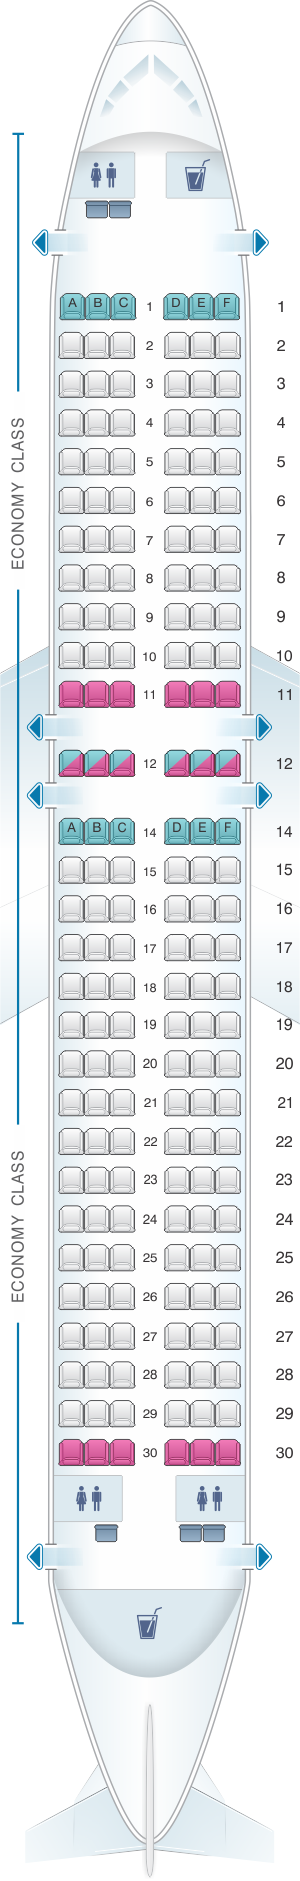 Seat map for Kingfisher Airlines Airbus A320 200 174PAX